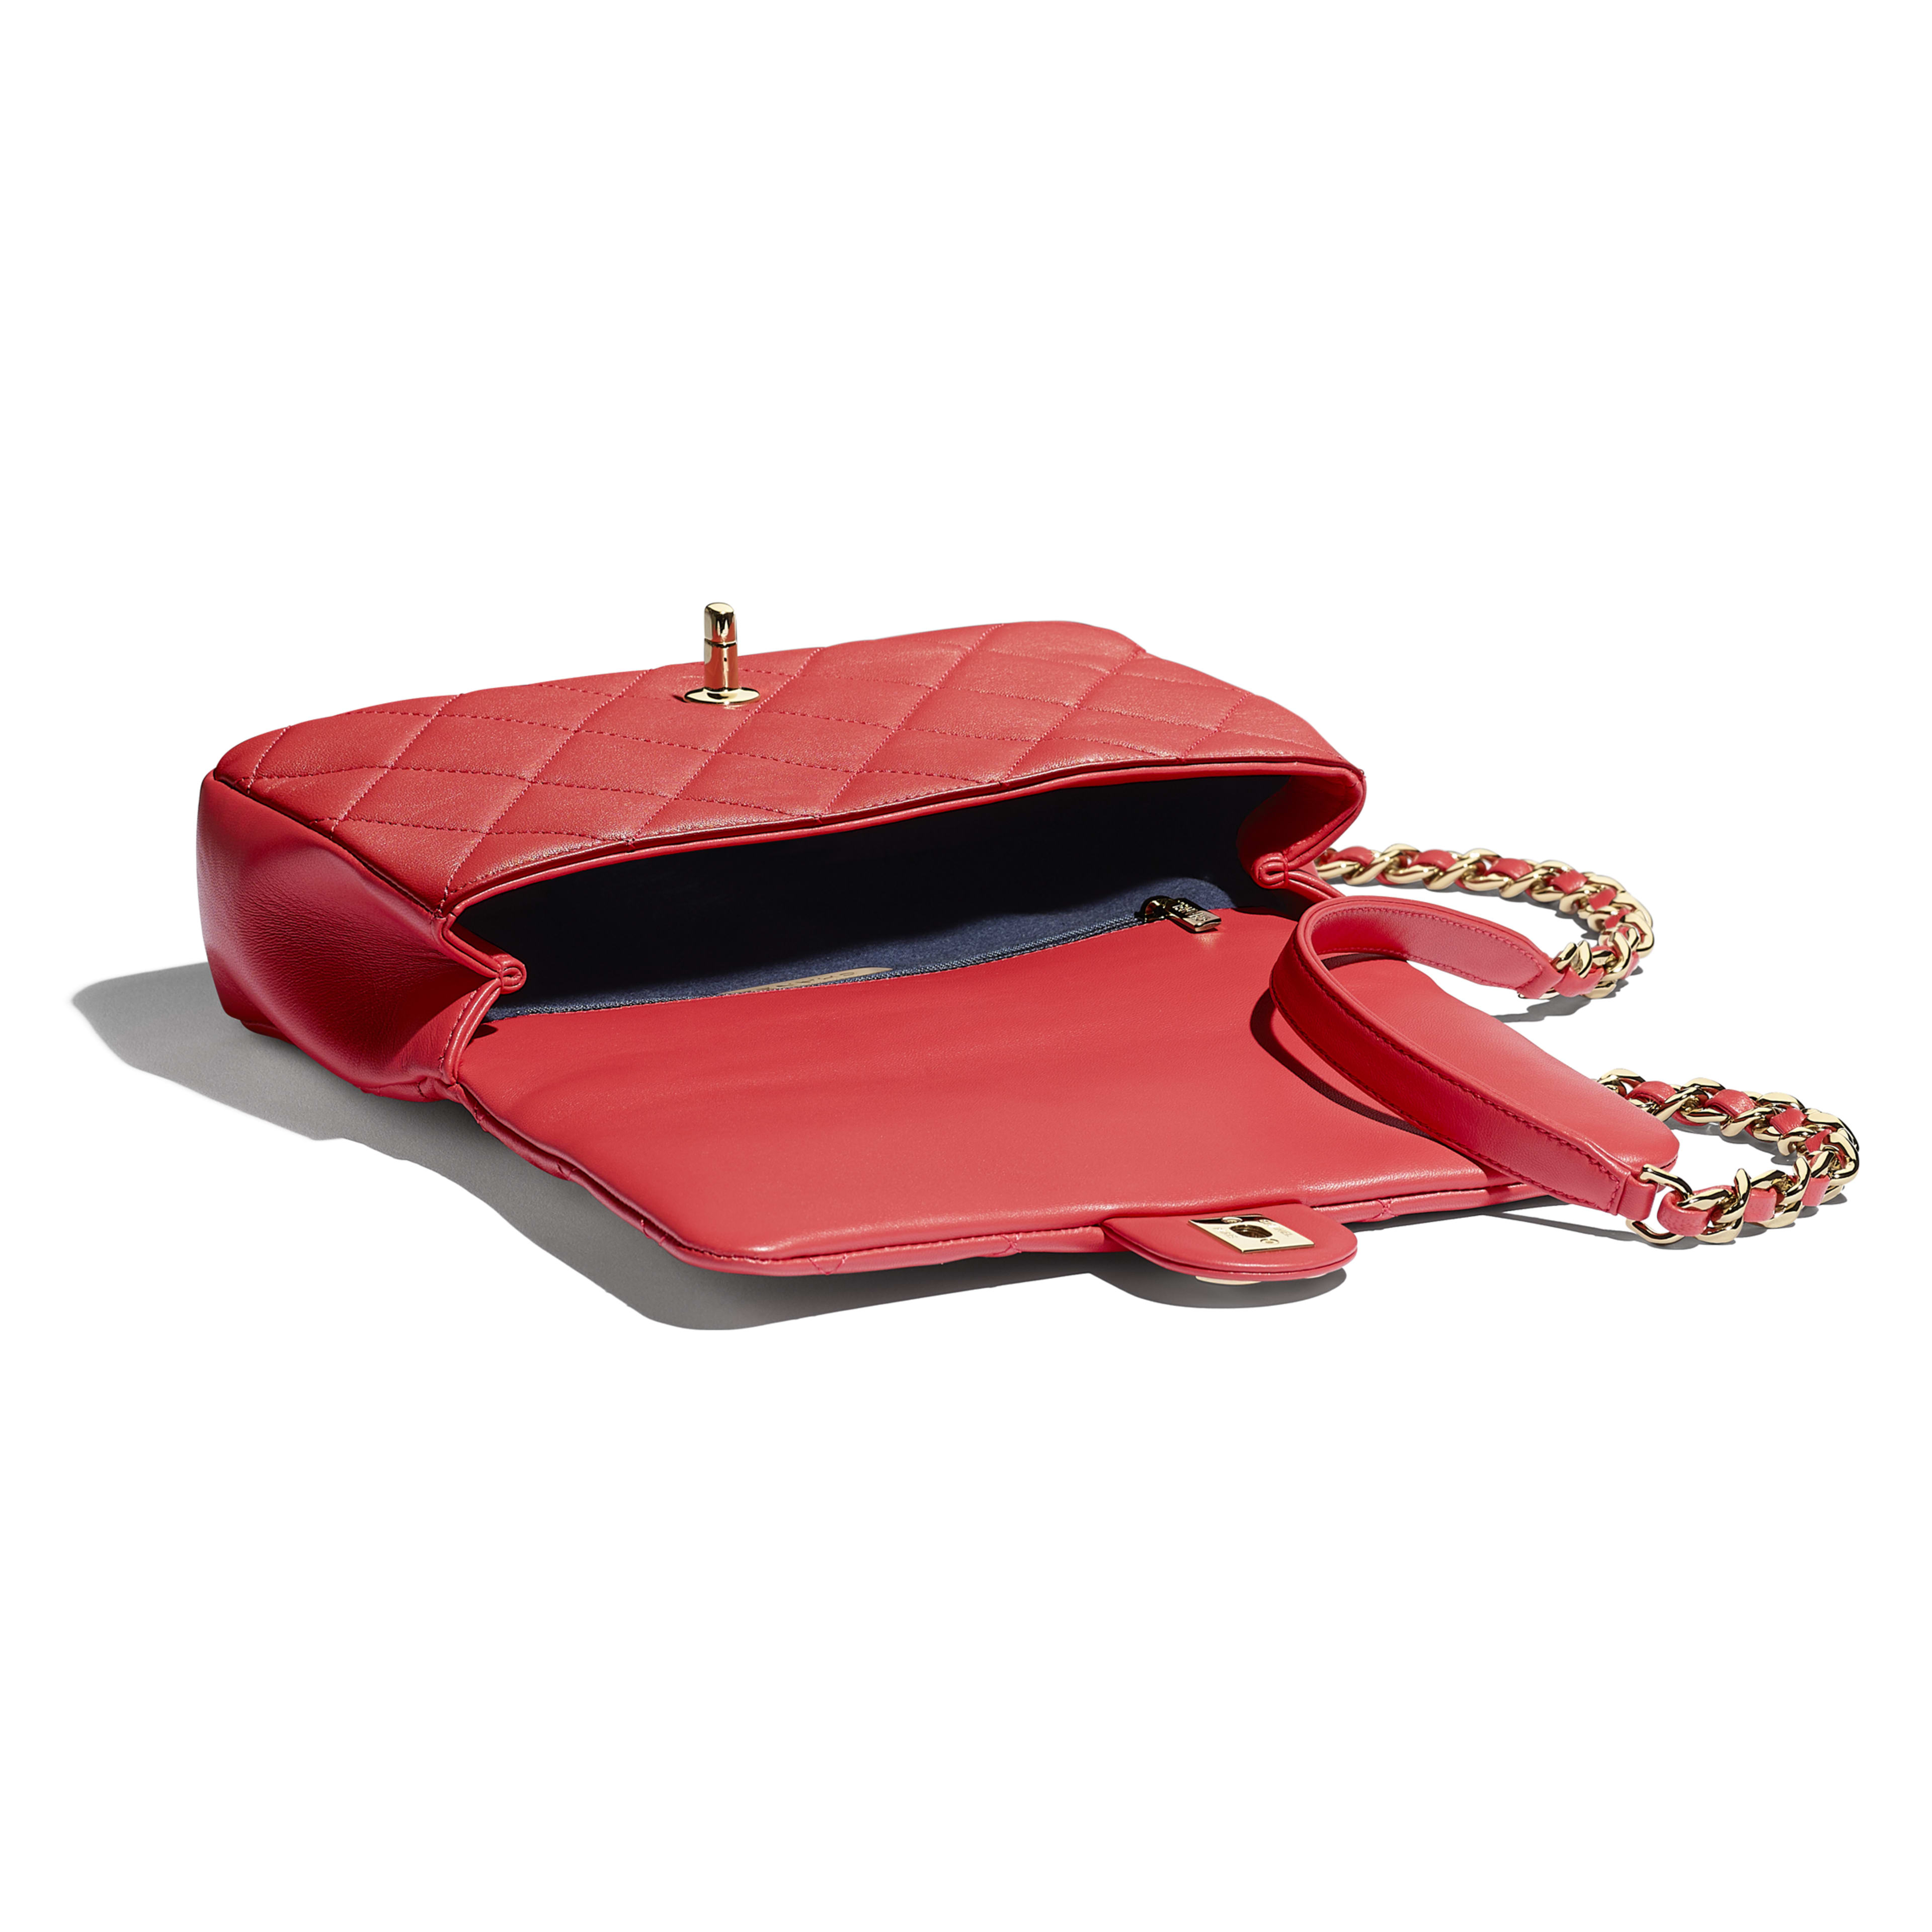 Flap Bag - Red - Lambskin, Resin & Gold-Tone Metal - Other view - see full sized version